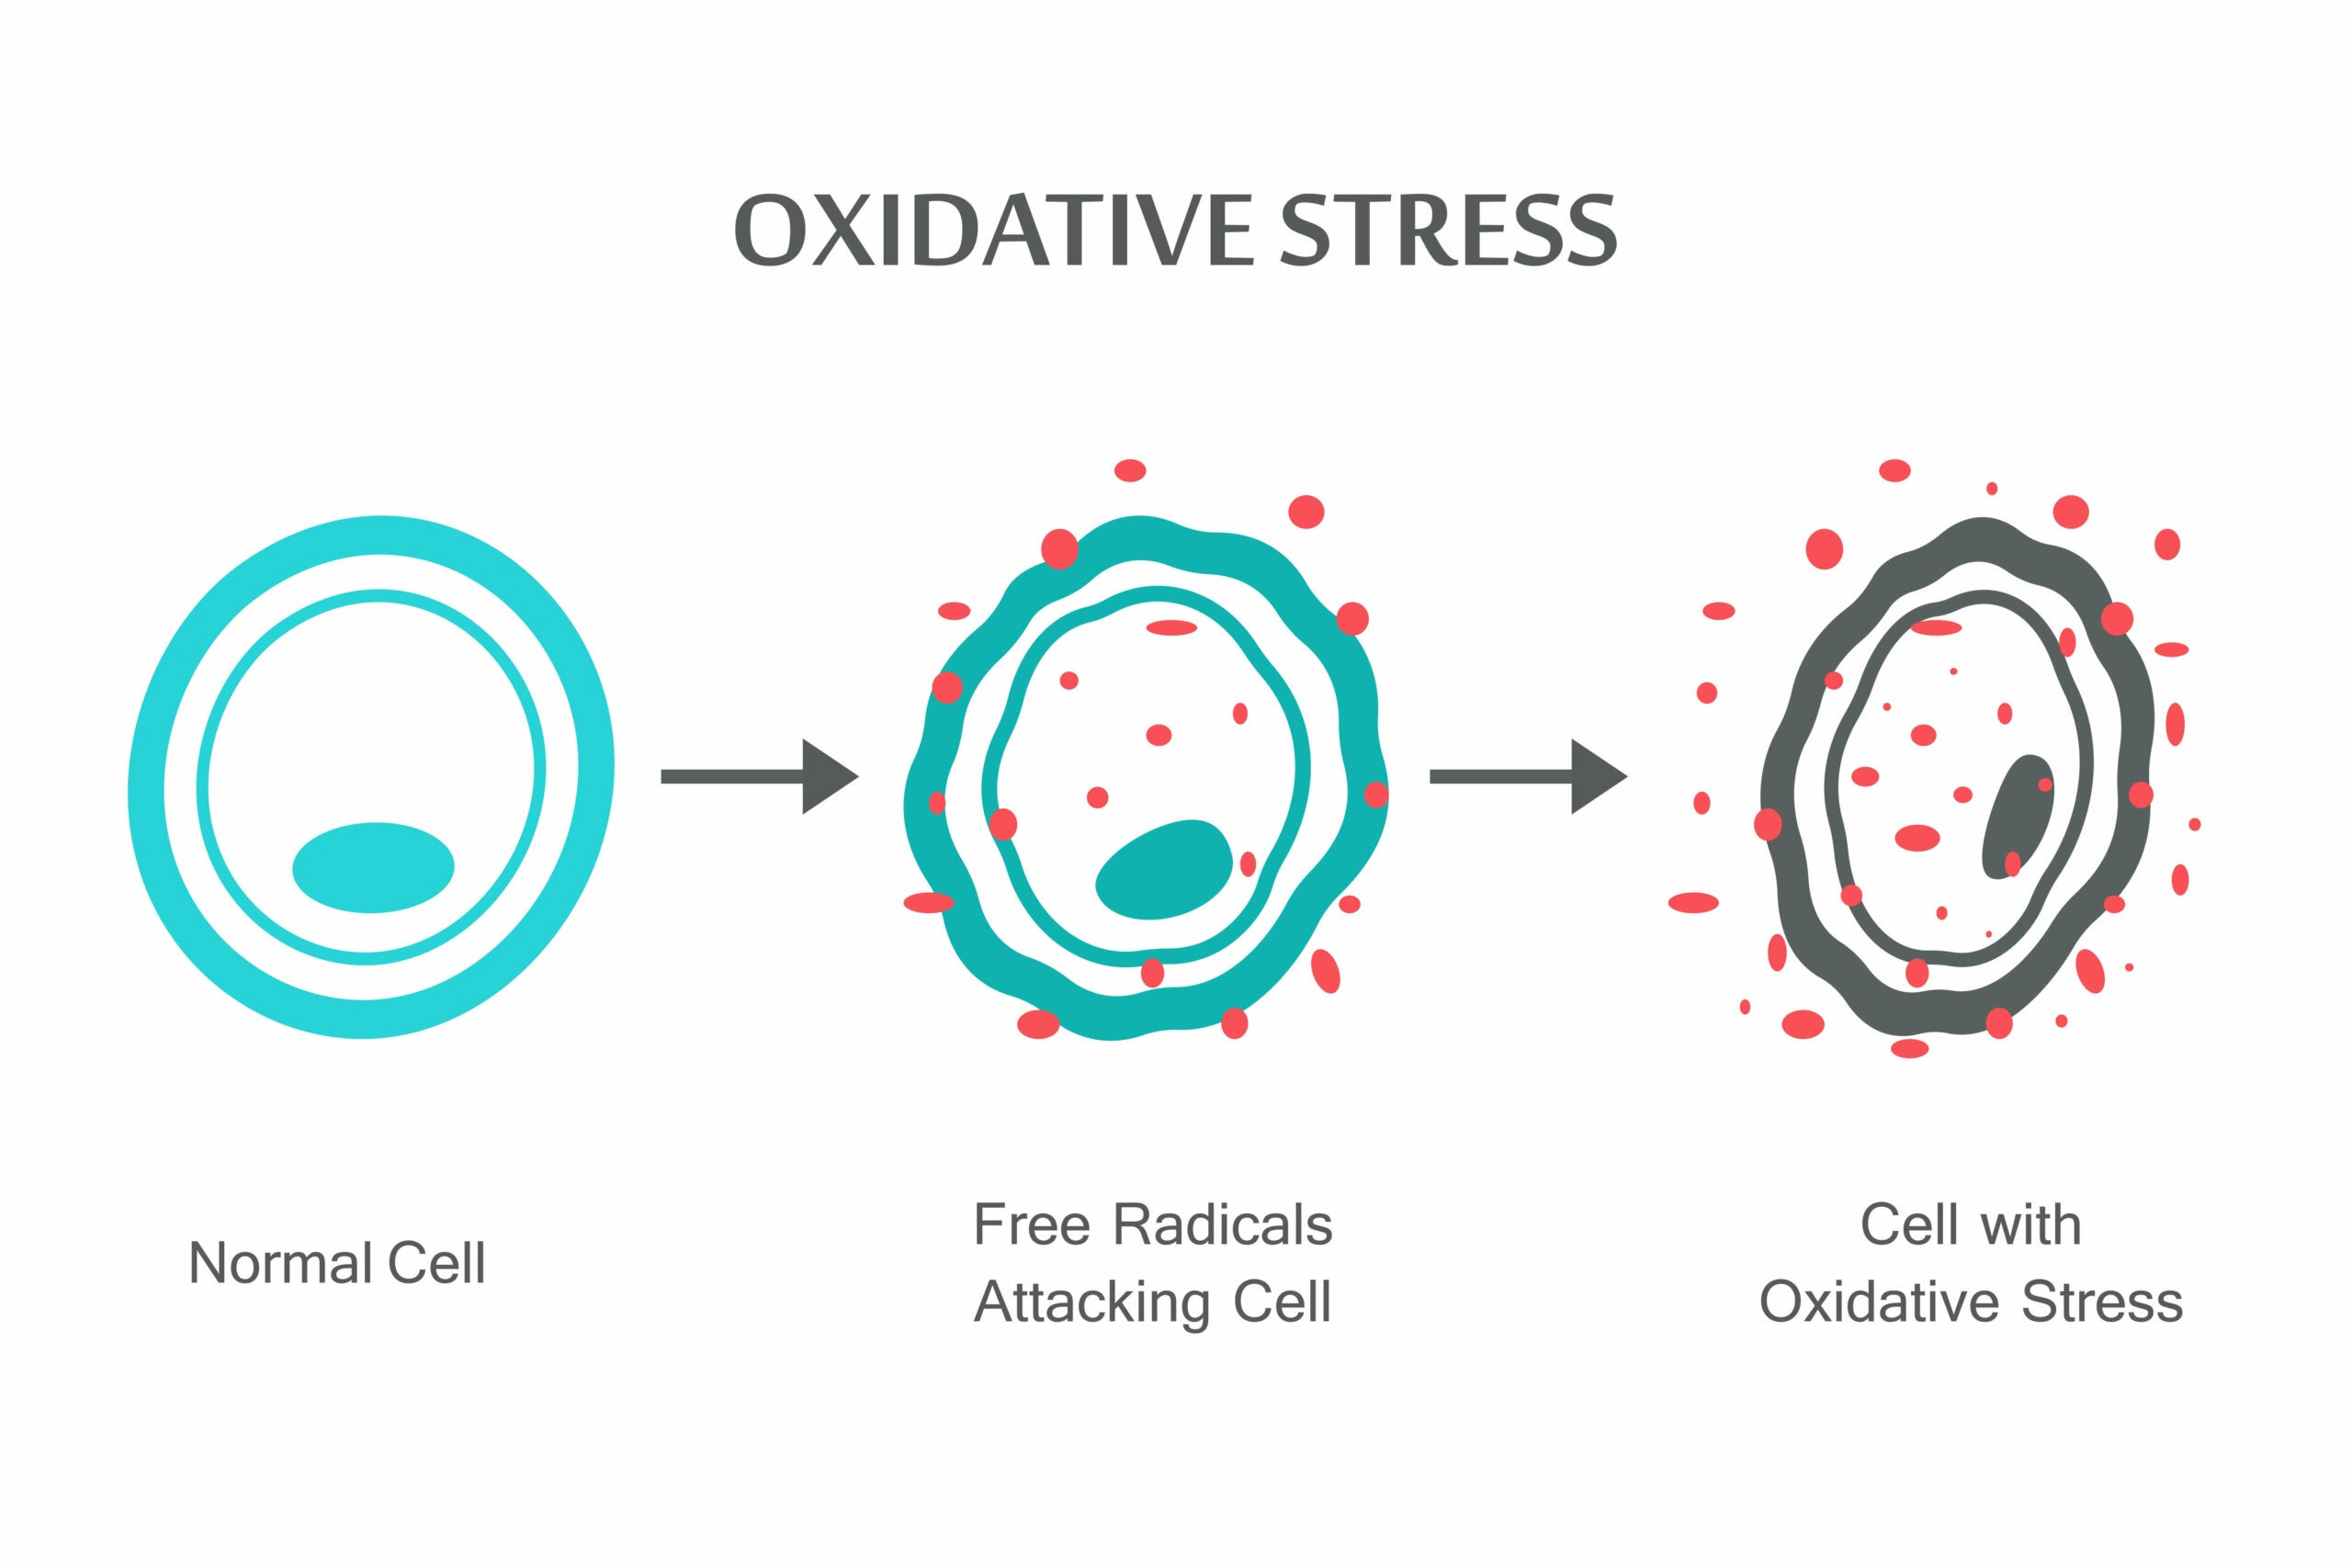 Oxidative stress on the cells.